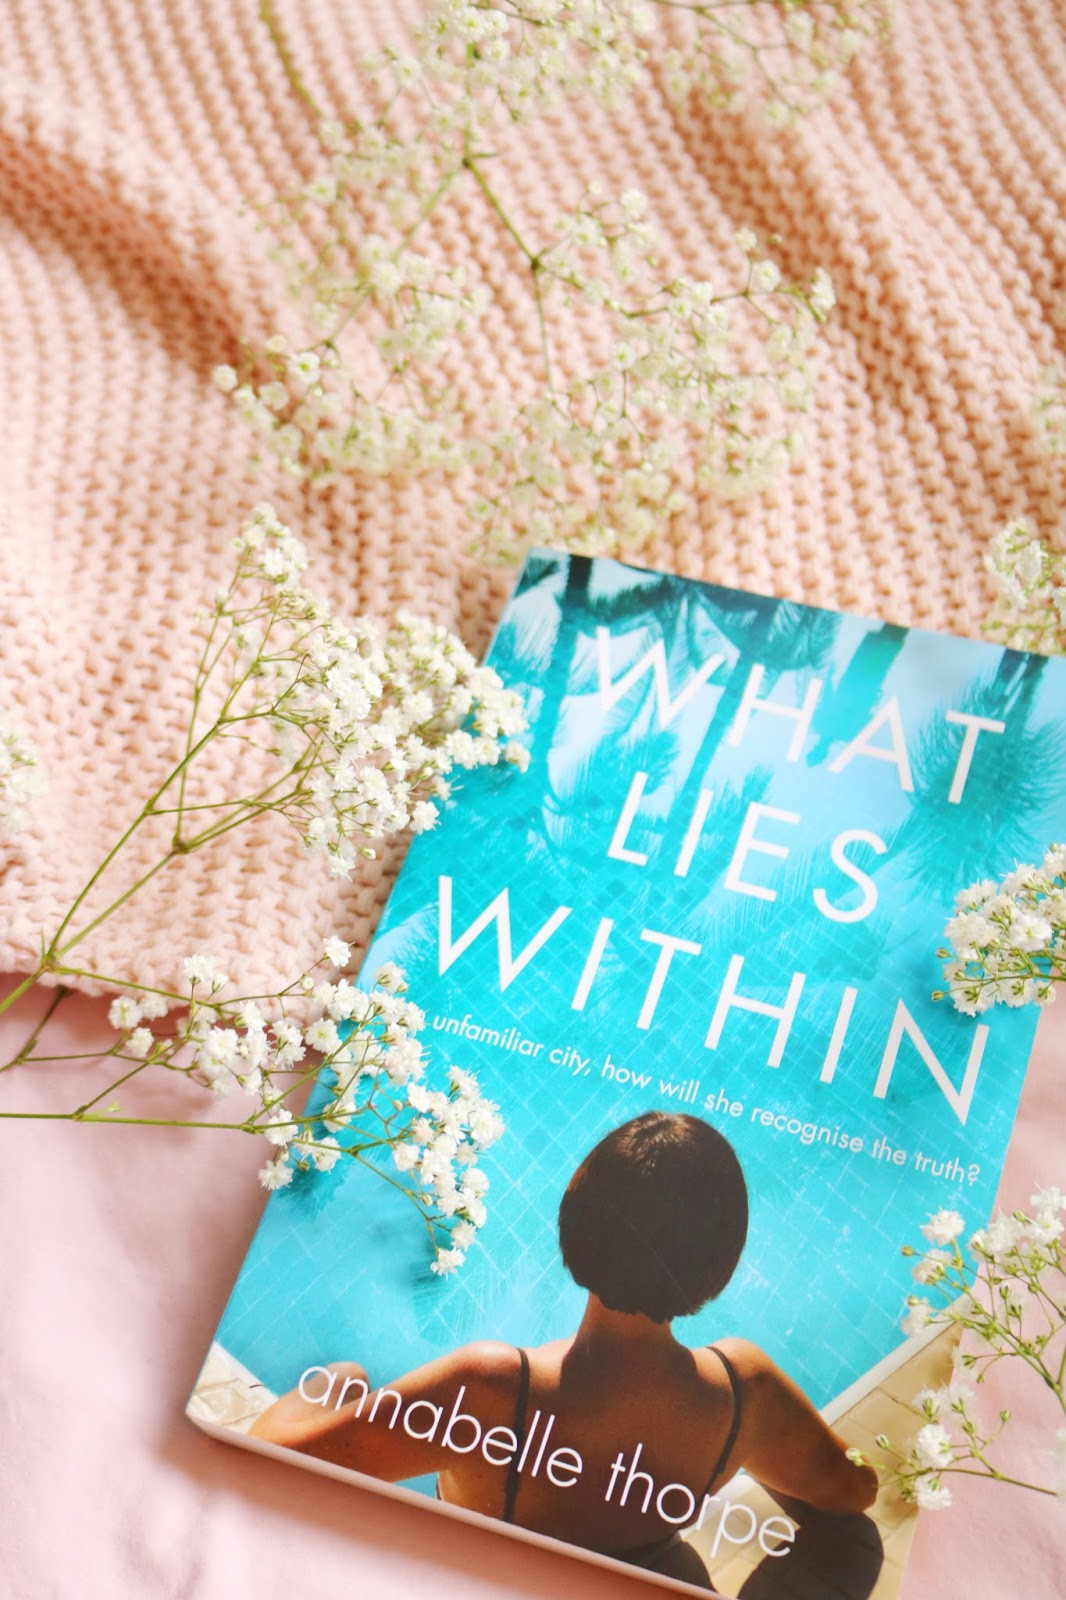 Blog Tour: What Lies Within by Annabelle Thorpe